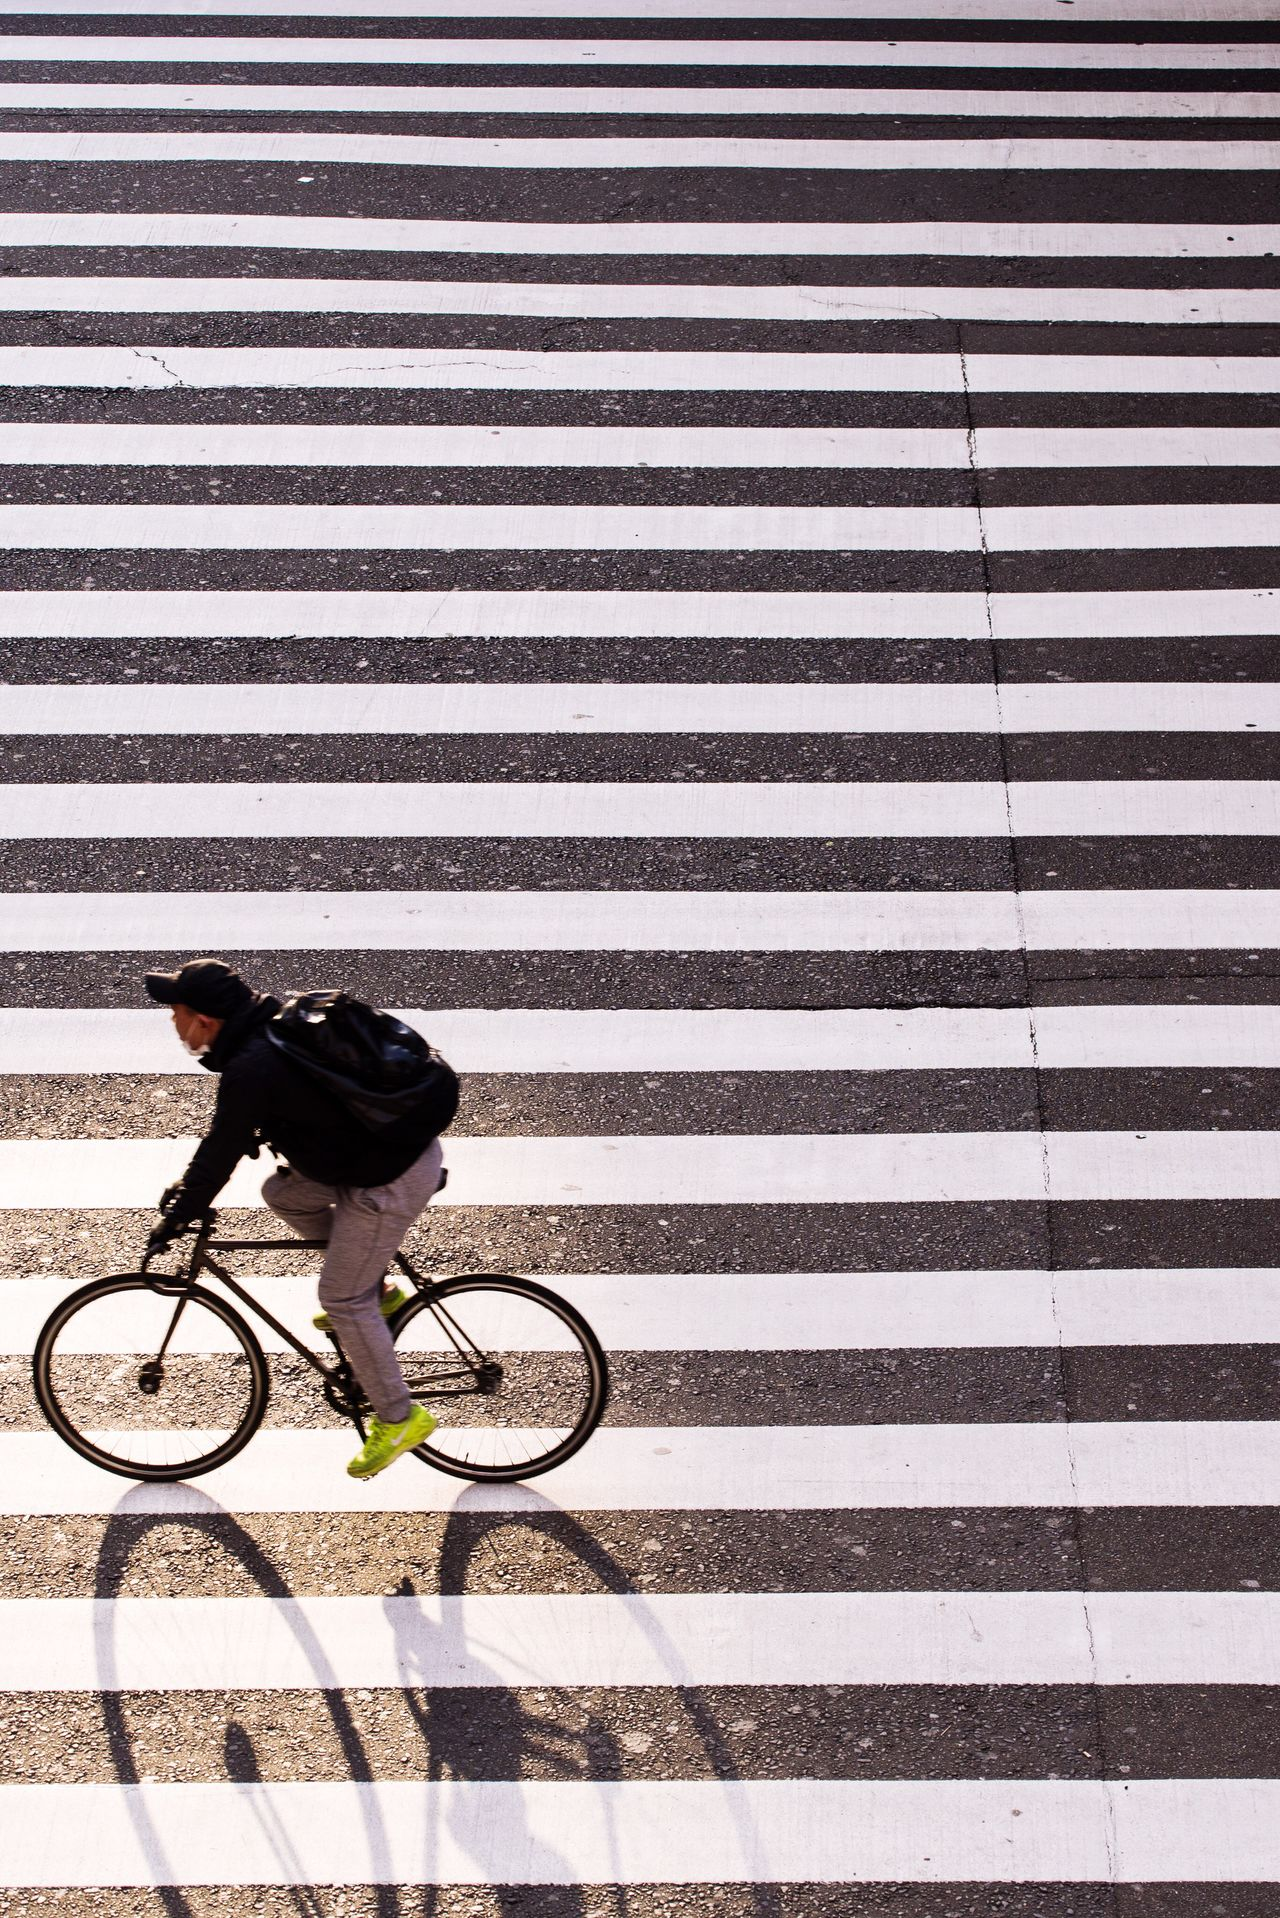 bycile in the lines Bicycle Street Cycling City One Person City Life Urban Road Streetphotography OSAKA Japan City Street Minimalism Minimalist Minimal Only Men Light And Shadow Strideby